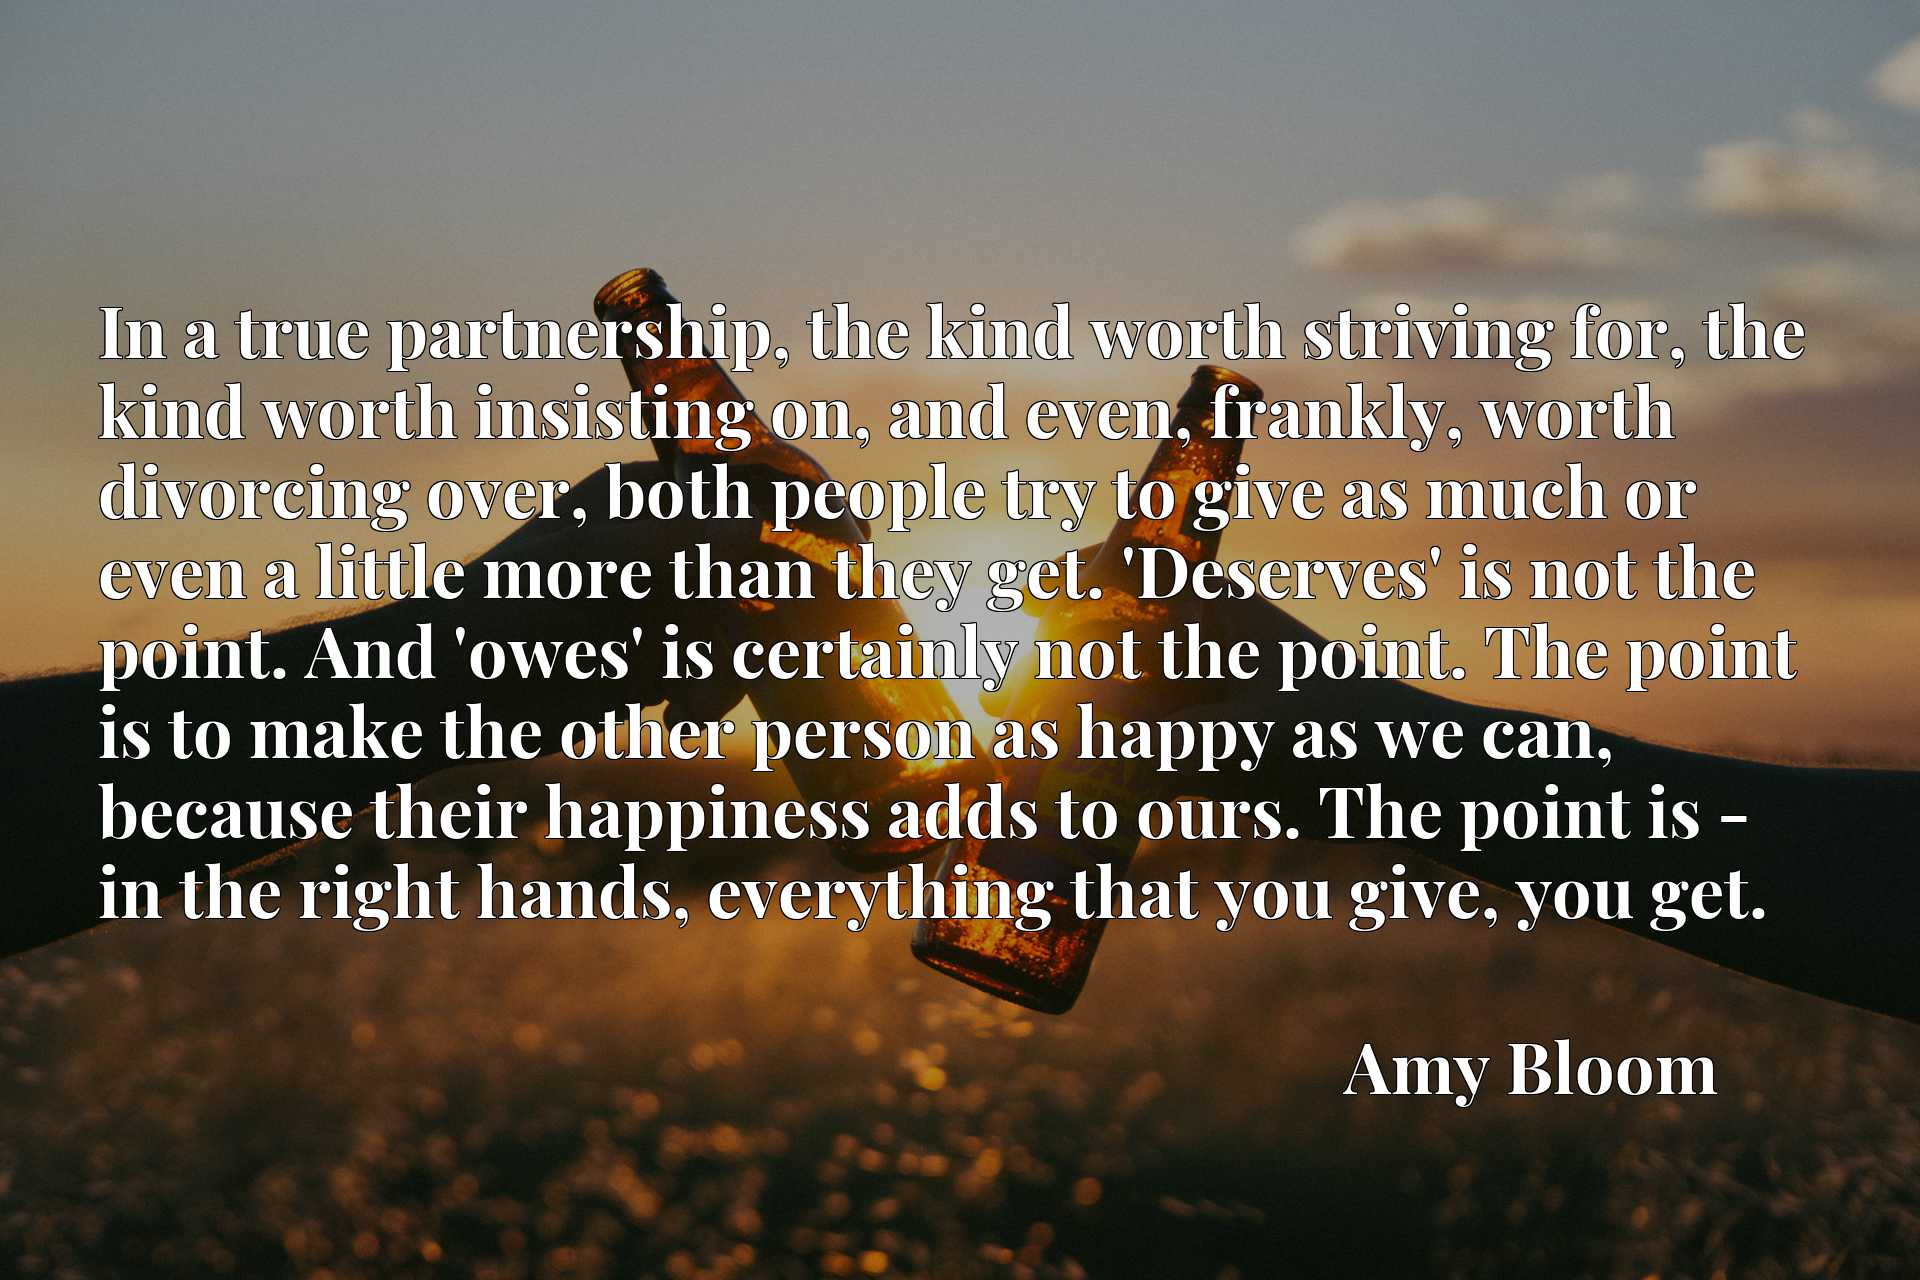 In a true partnership, the kind worth striving for, the kind worth insisting on, and even, frankly, worth divorcing over, both people try to give as much or even a little more than they get. 'Deserves' is not the point. And 'owes' is certainly not the point. The point is to make the other person as happy as we can, because their happiness adds to ours. The point is - in the right hands, everything that you give, you get.